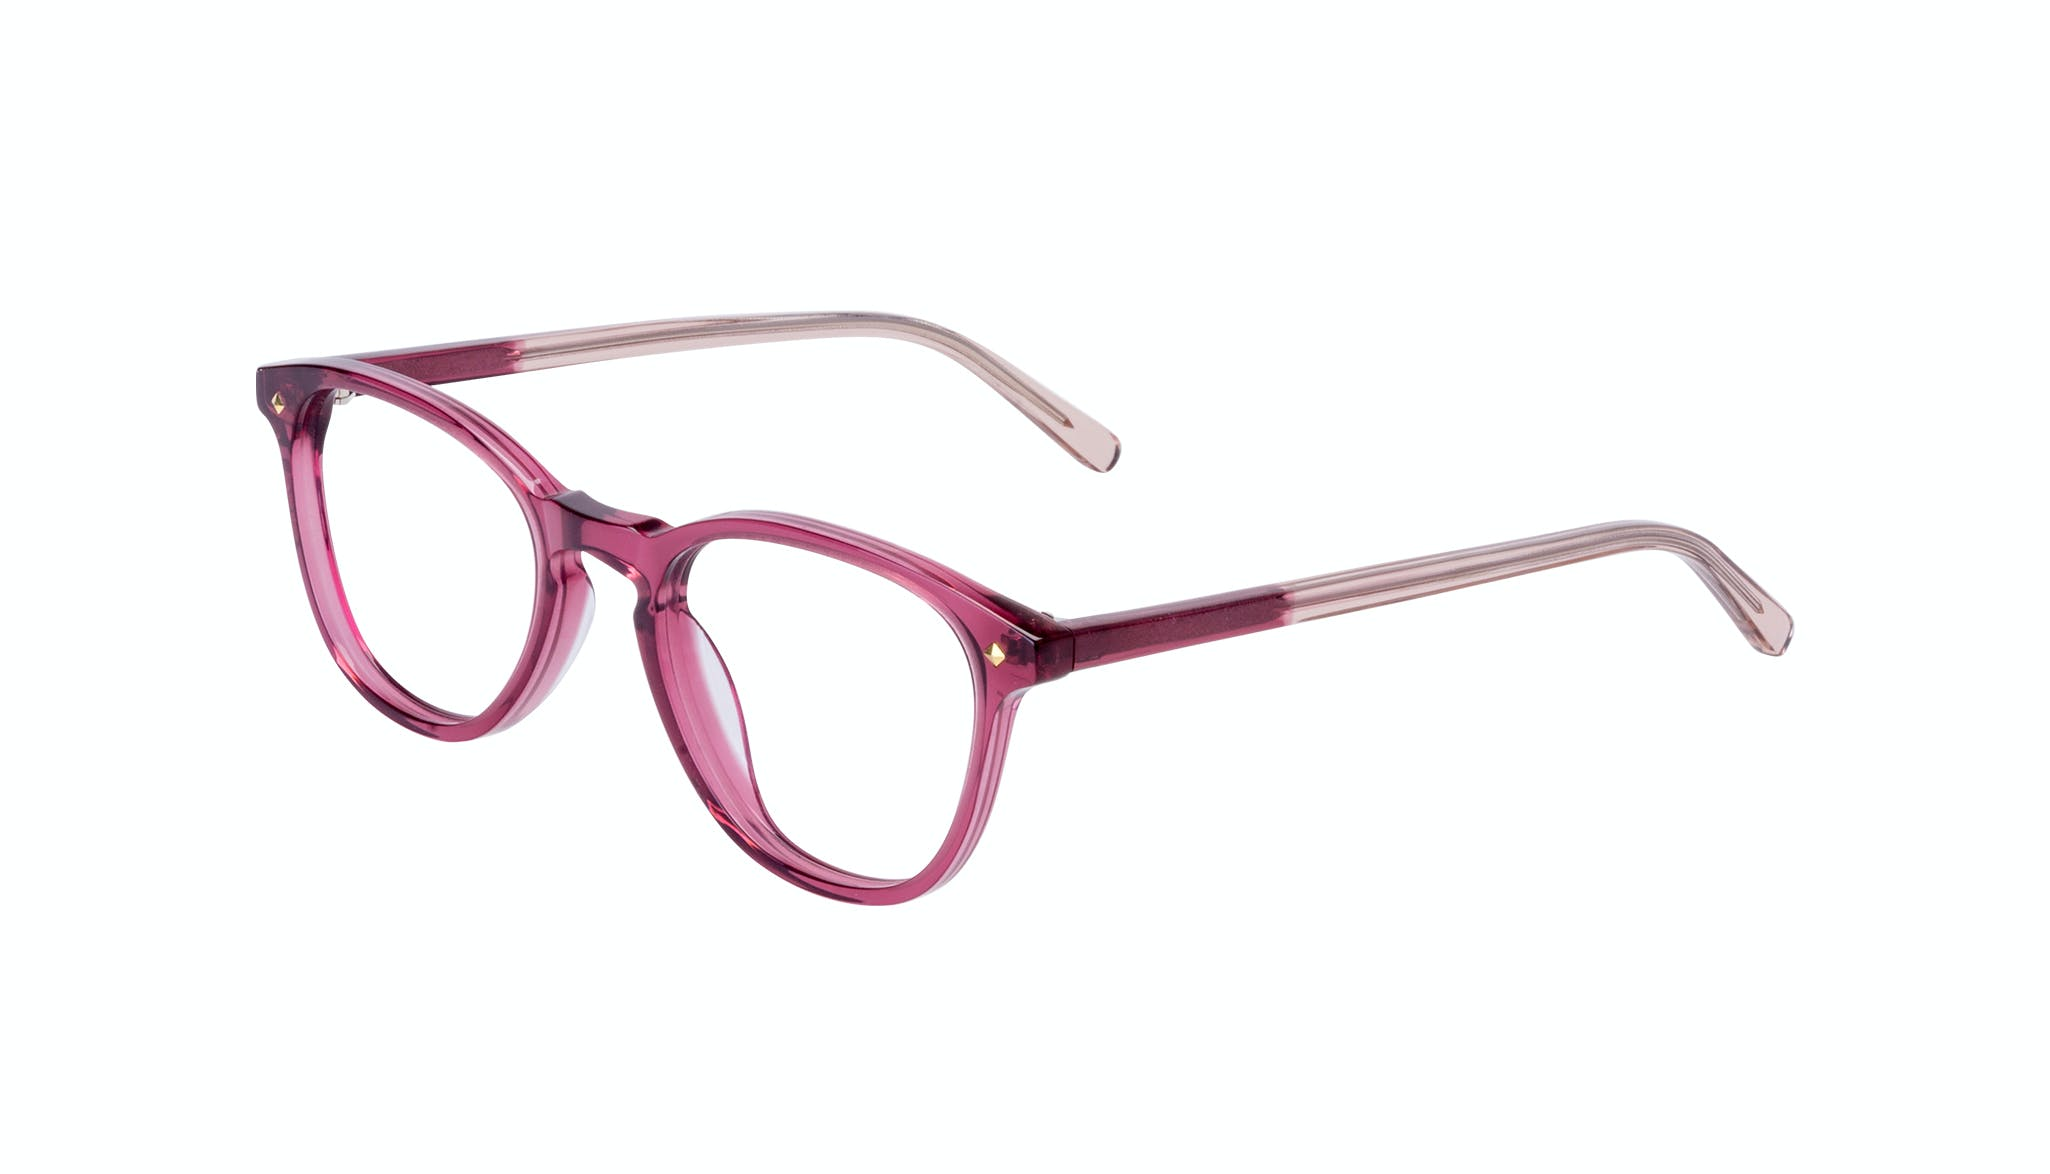 Affordable Fashion Glasses Round Eyeglasses Women Crush Berry Tilt